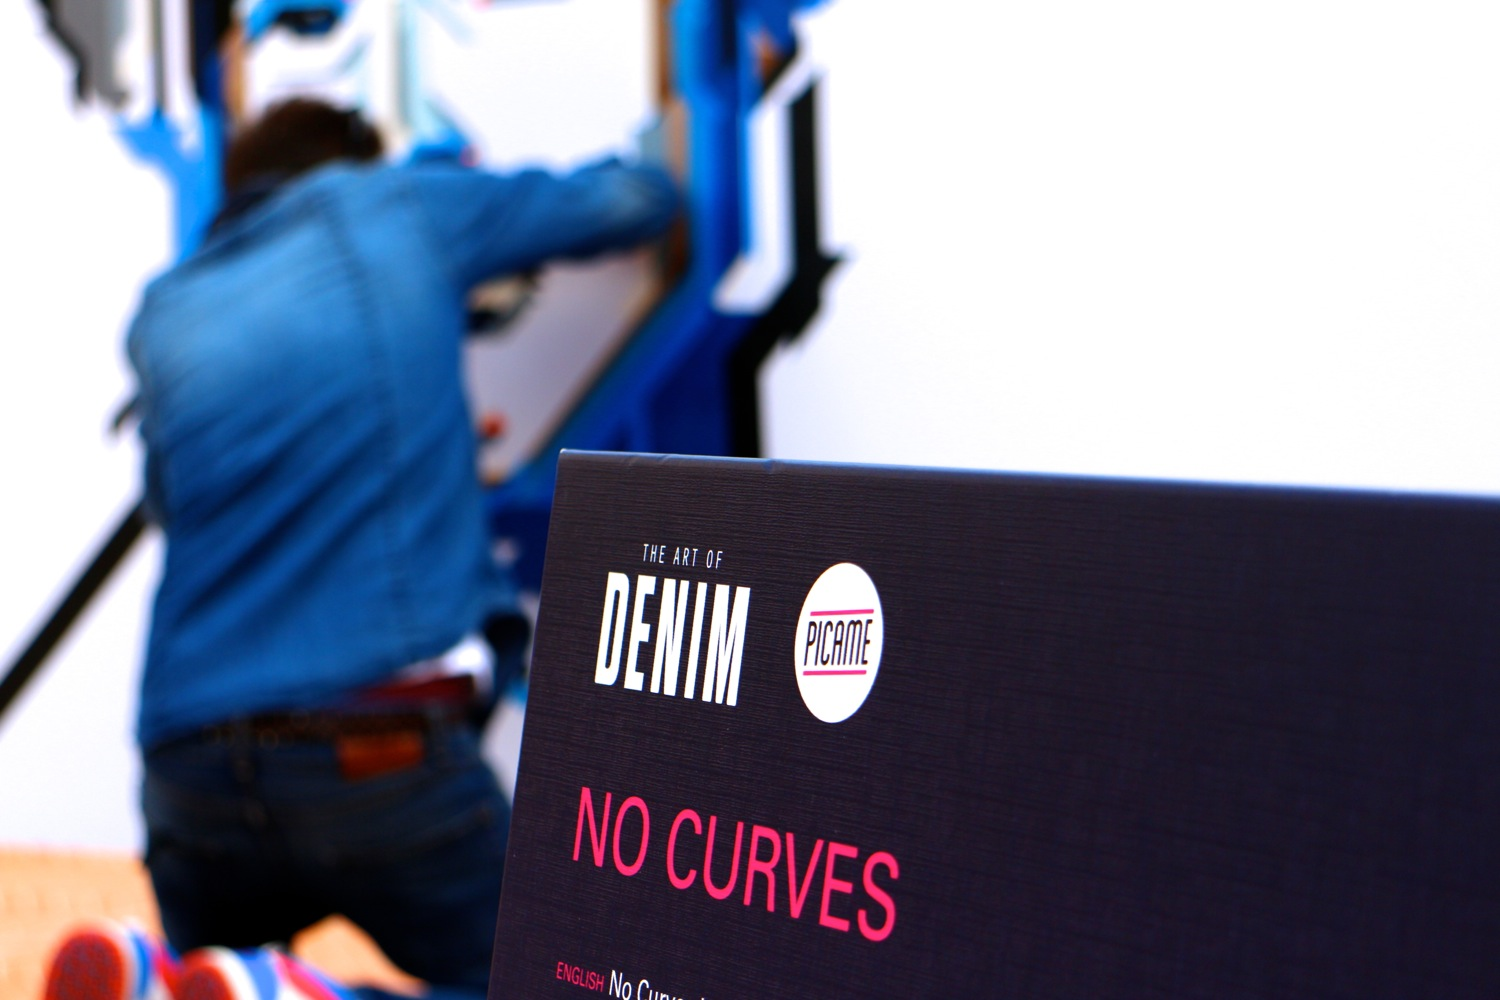 no_curves_the_art_of_denim_15